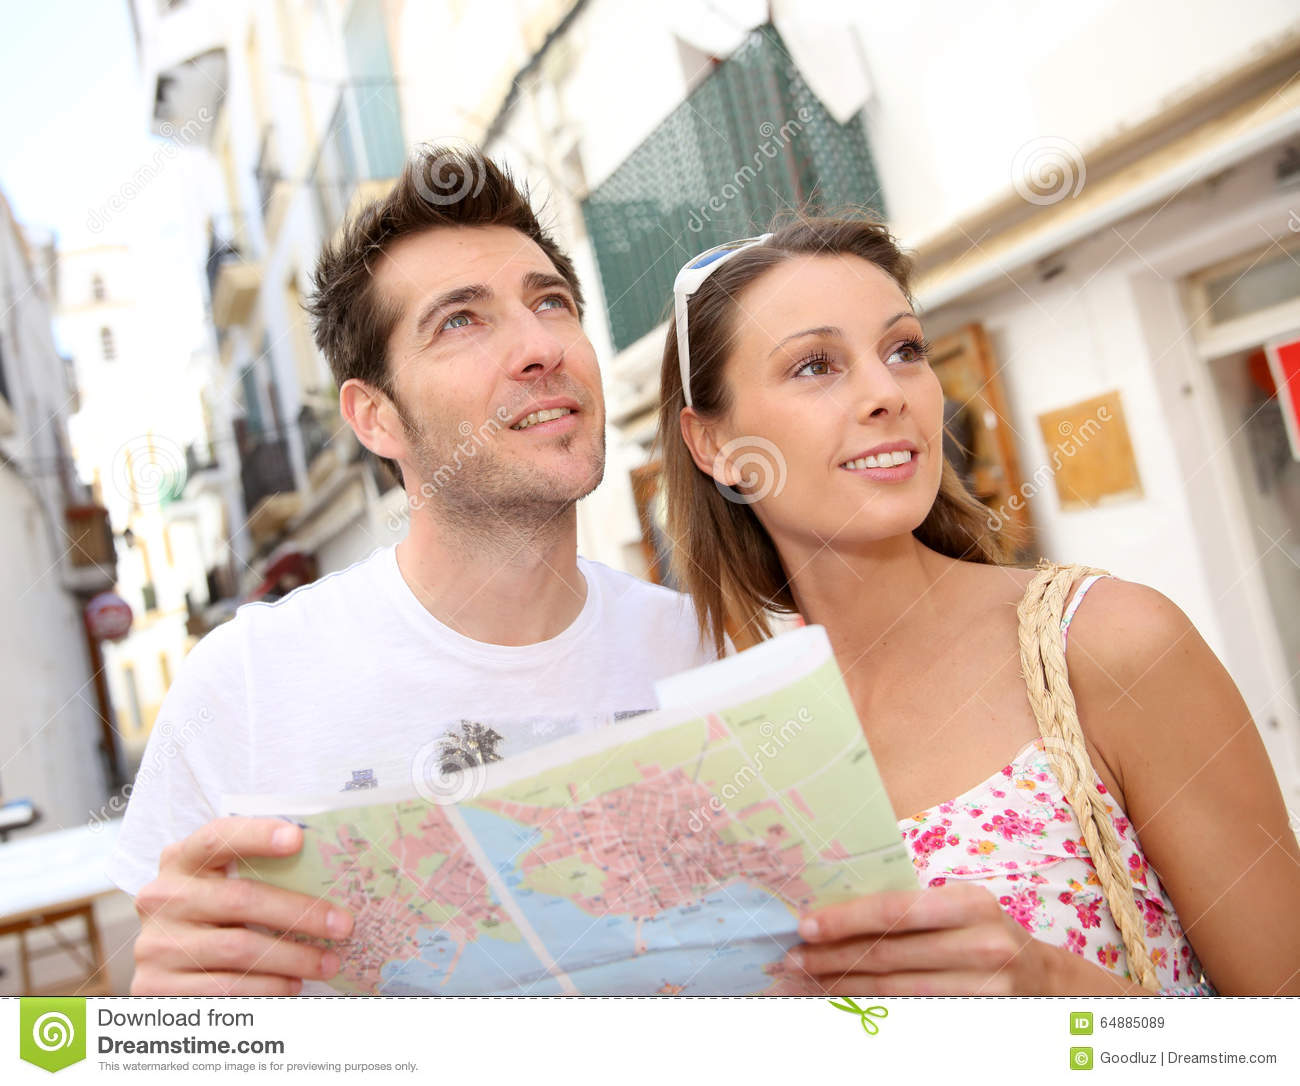 ibiza senior singles Information about dating in spain, including online dating sites, dating ideas, relationships, and insight into the dating scene in spain.